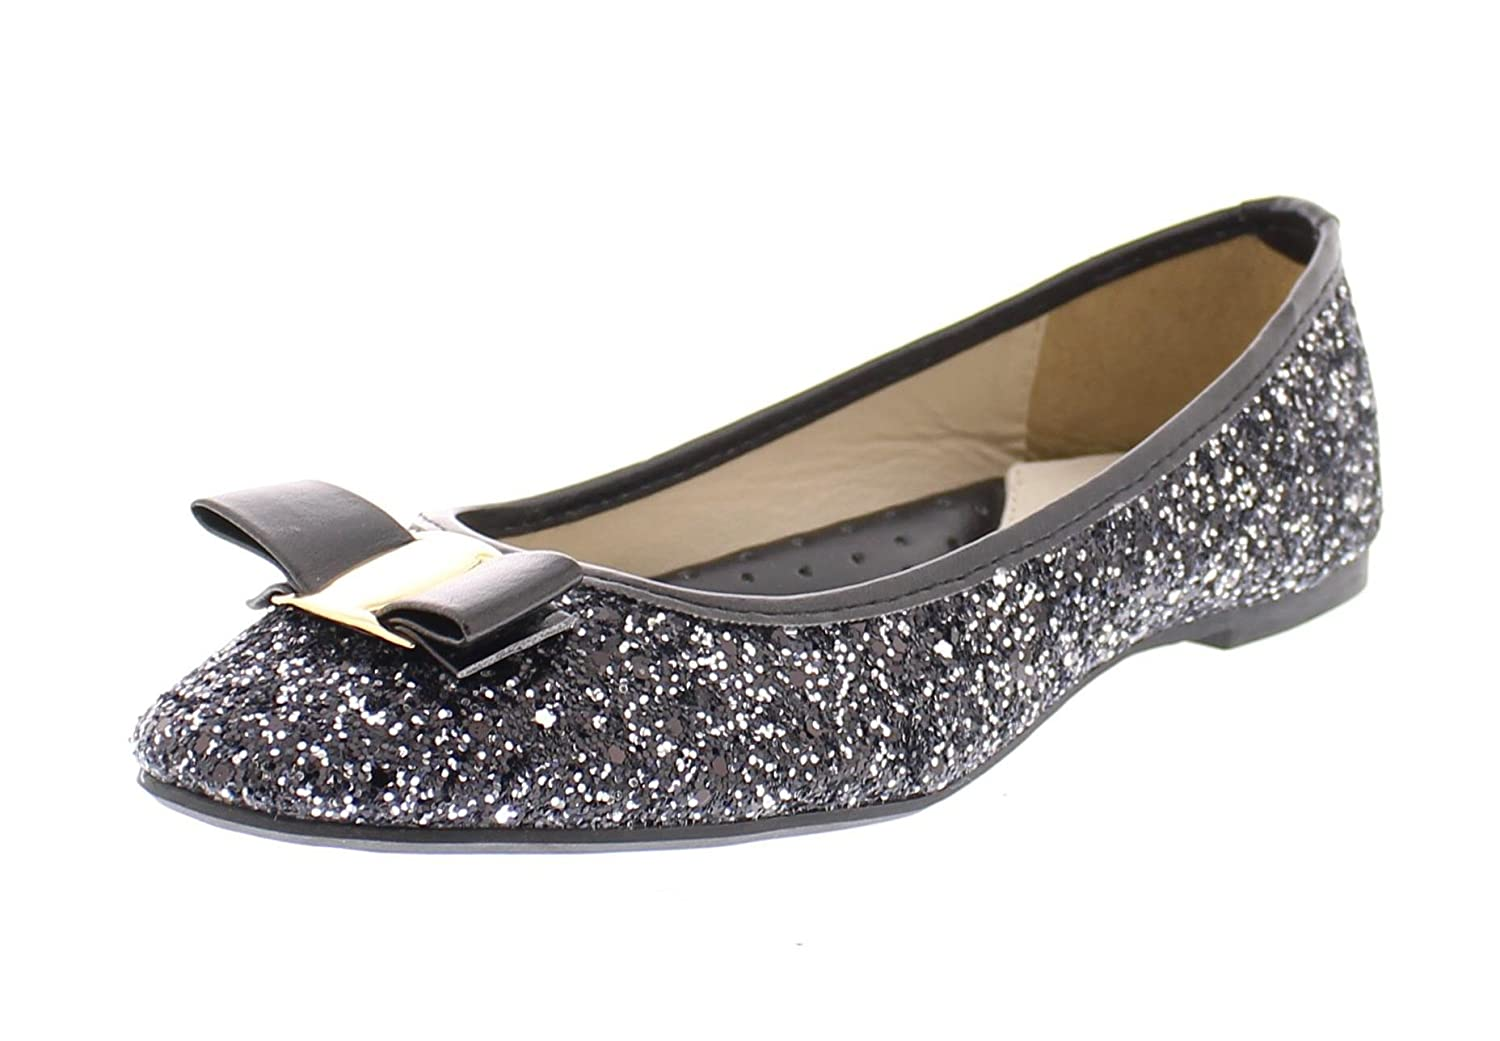 f93c74a61760 Fine layered sequins embellished dressy slip-on heelless style pumps for  women available basic black